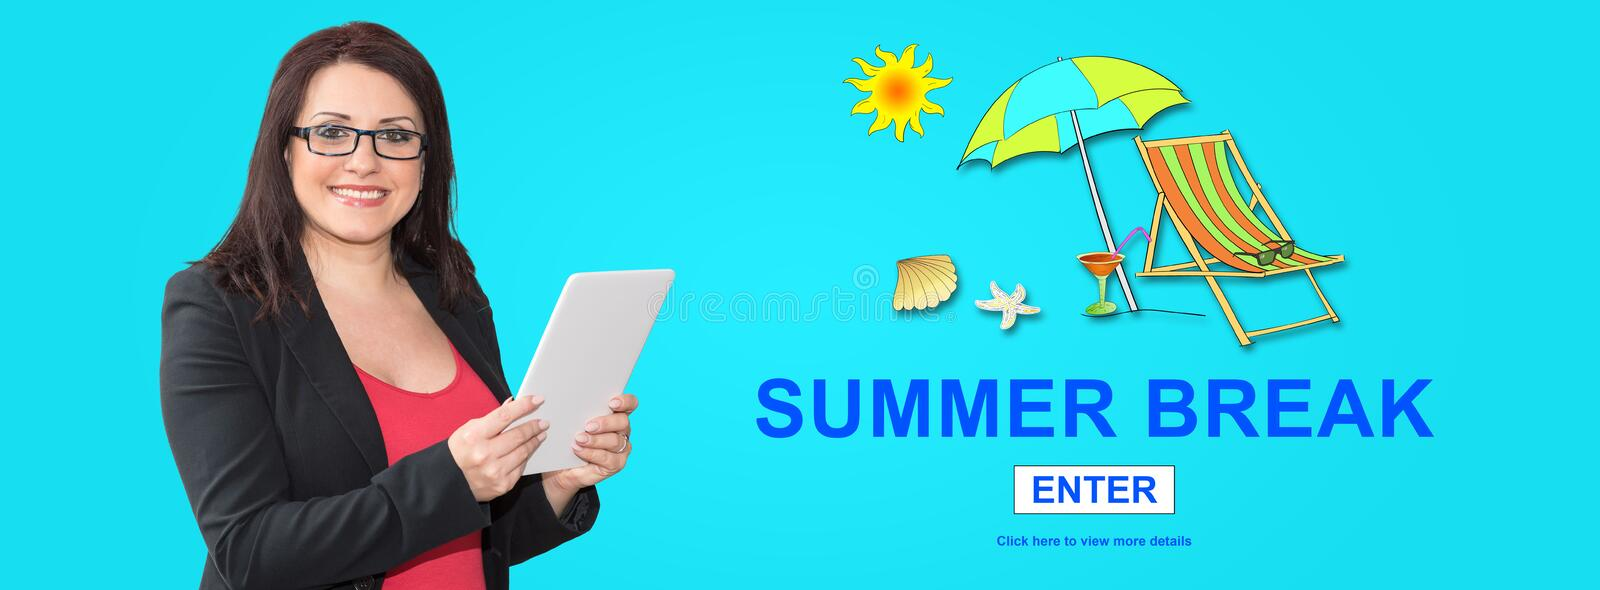 Concept of summer break. Woman using digital tablet with summer break concept on background royalty free stock image